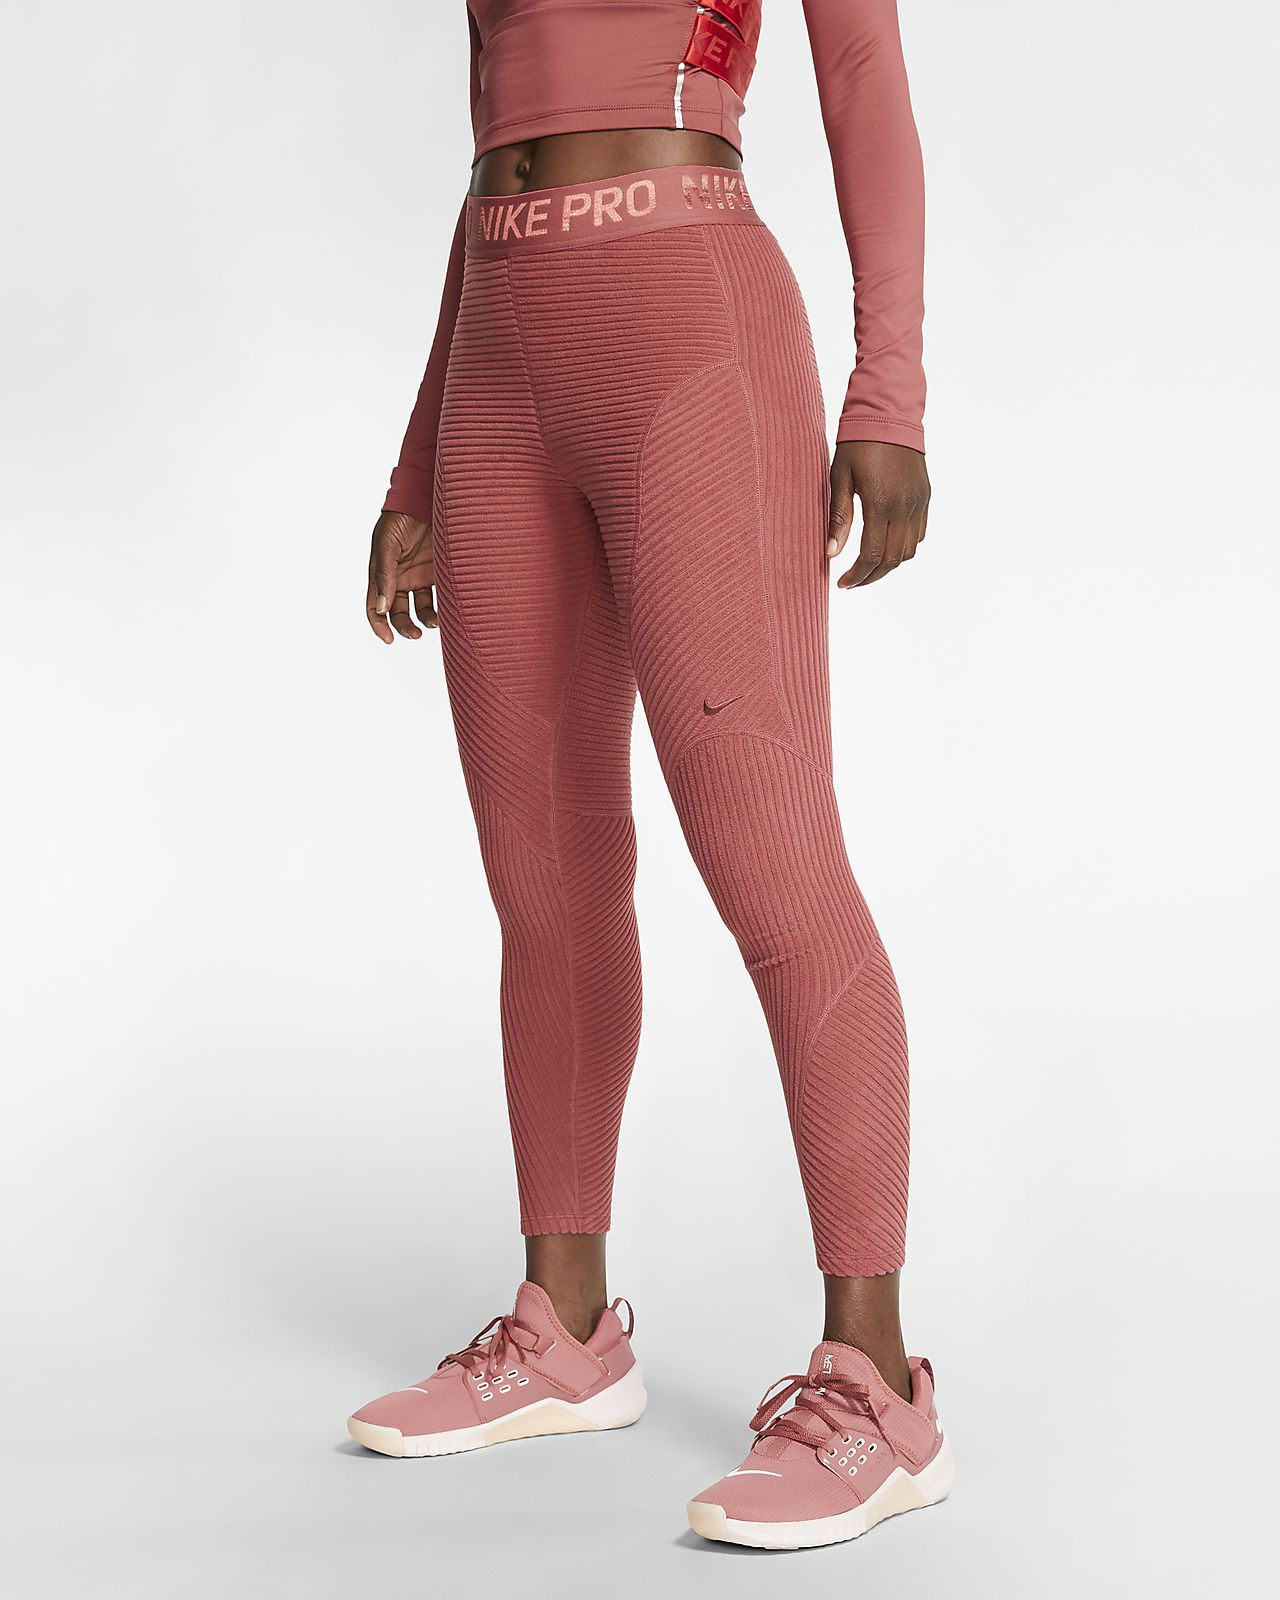 Nike Pro HyperWarm Women's Velour Leggings